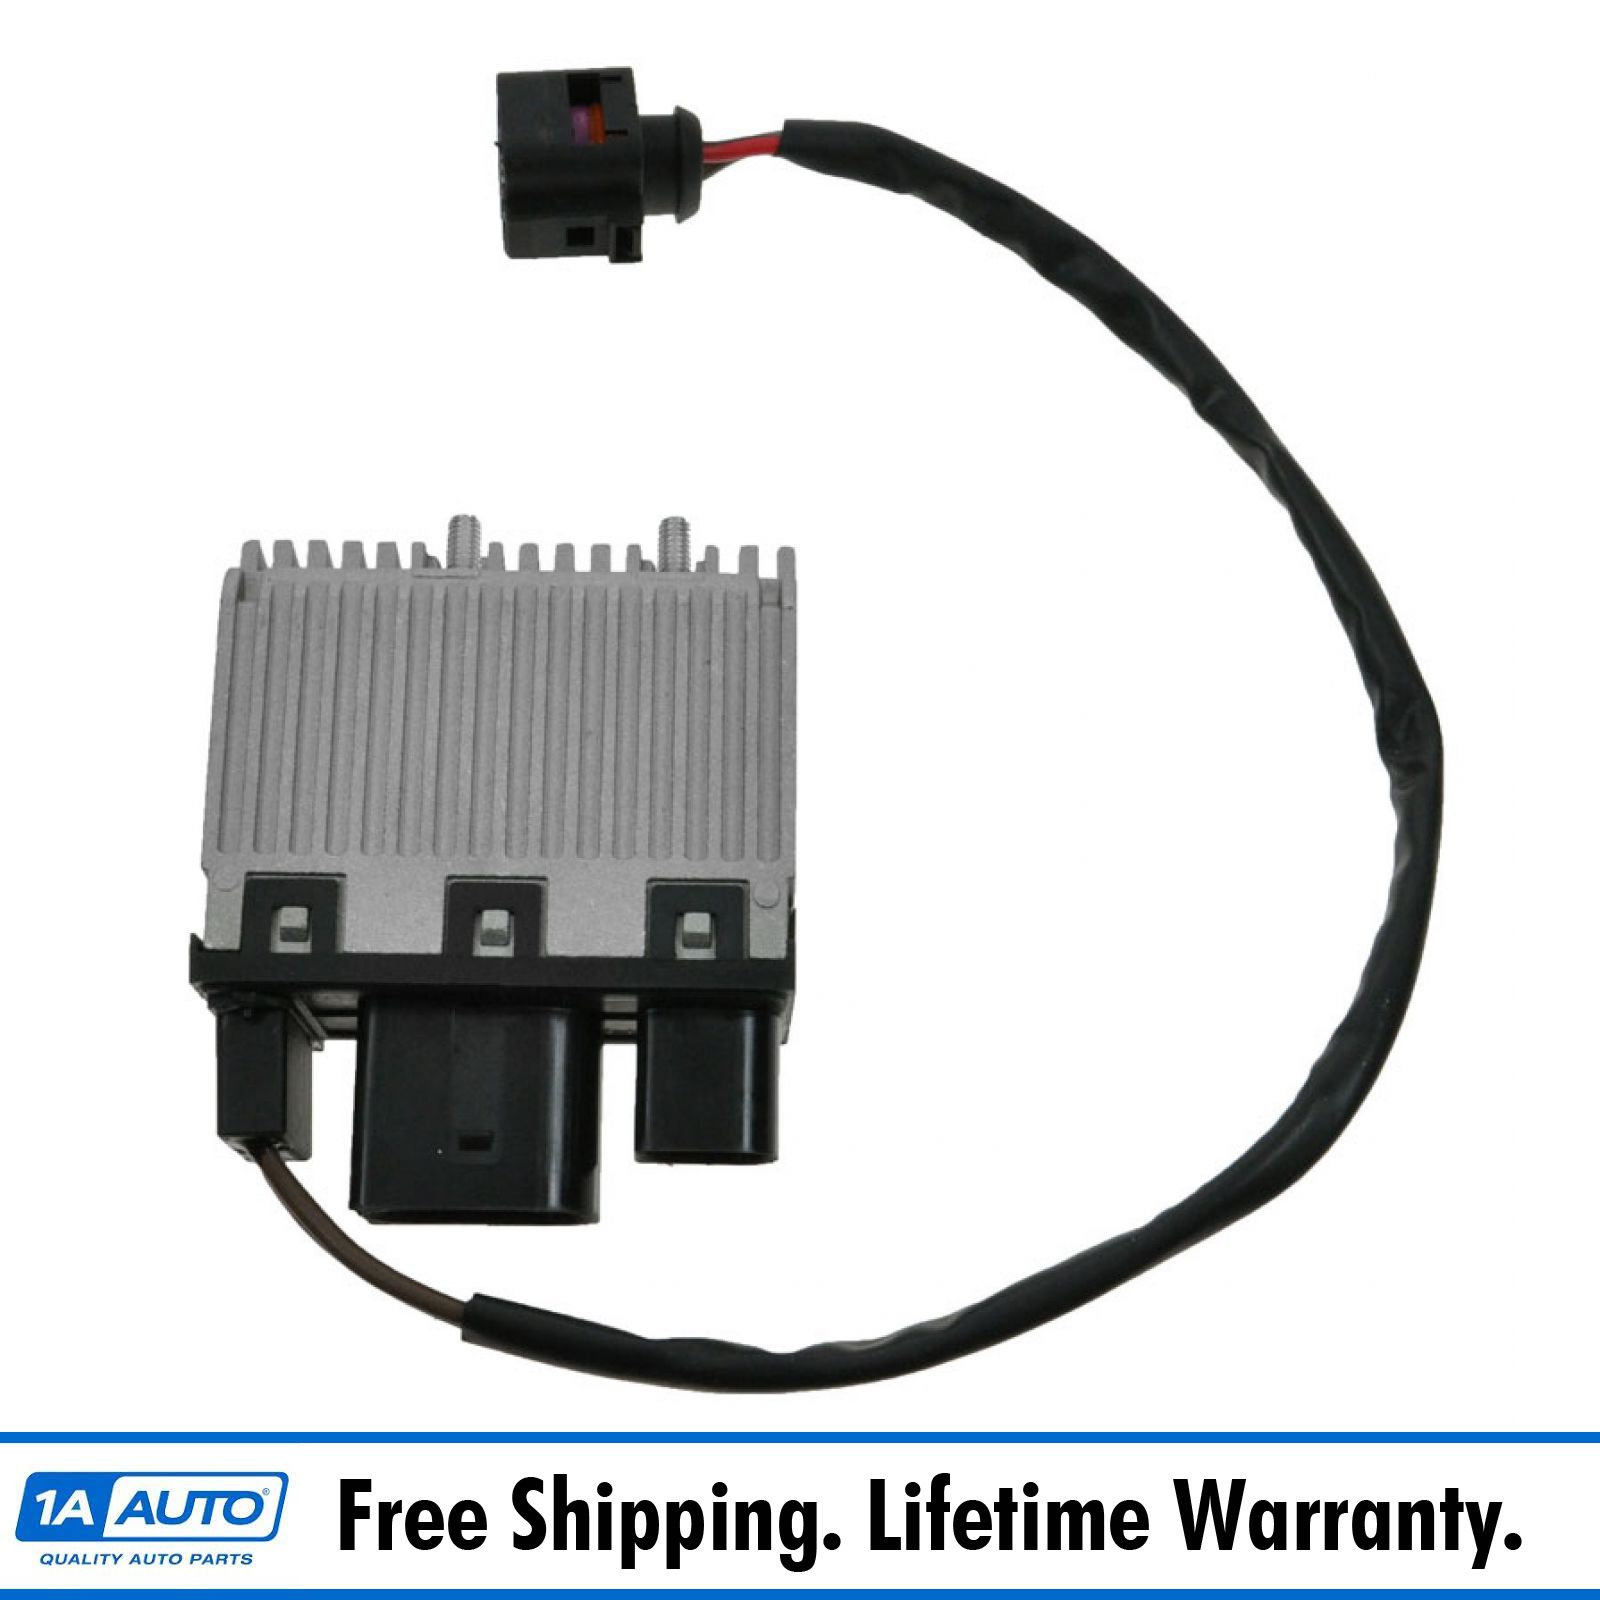 Engine Radiator Cooling Fan Control Unit Module For 2002-2009 Audi A4 A6 Quattro